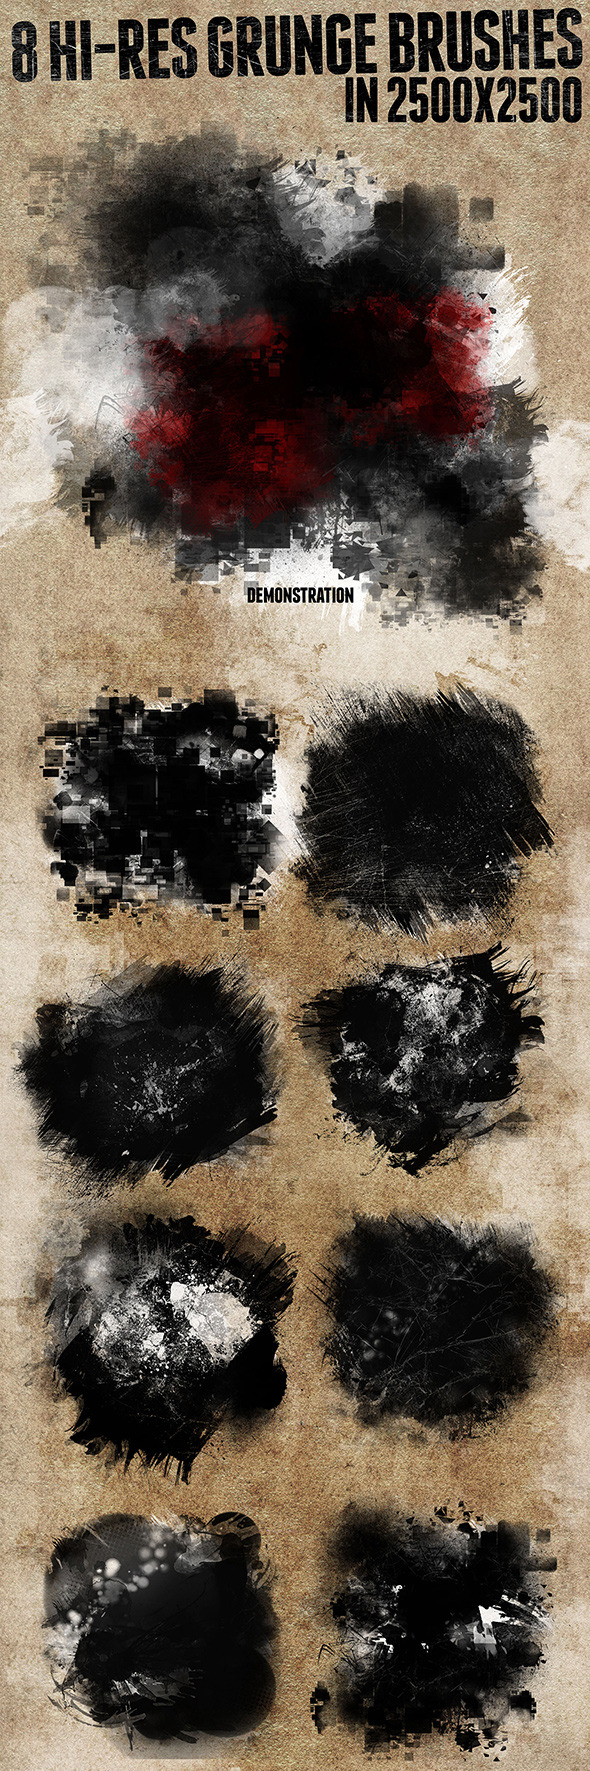 GraphicRiver 8 Hi-res Grunge Brushes 9500460